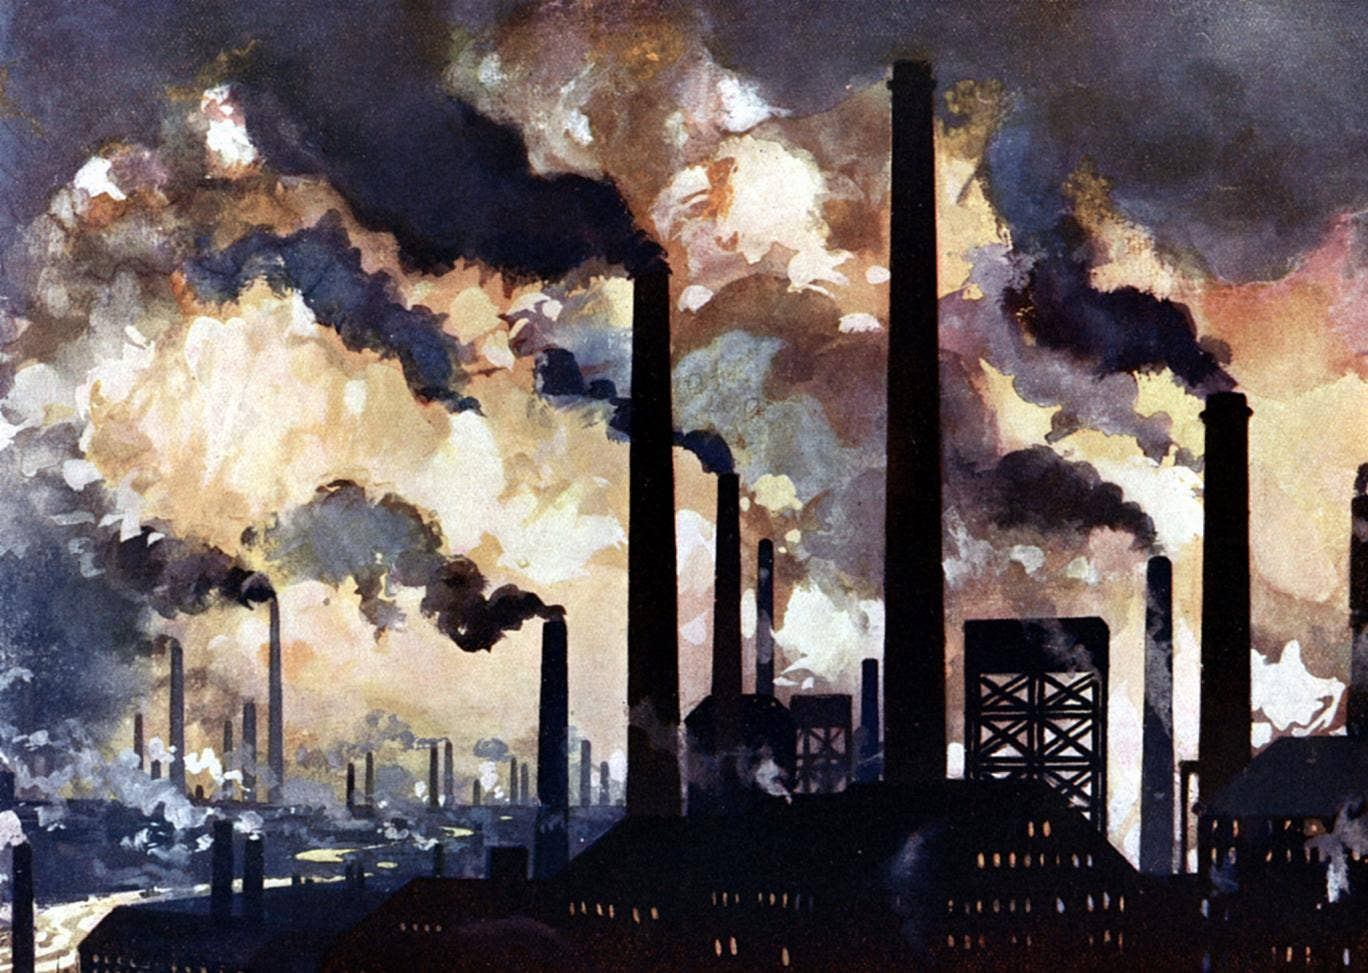 Smoke and mirrors of the past: Sheffield factories, circa 1925